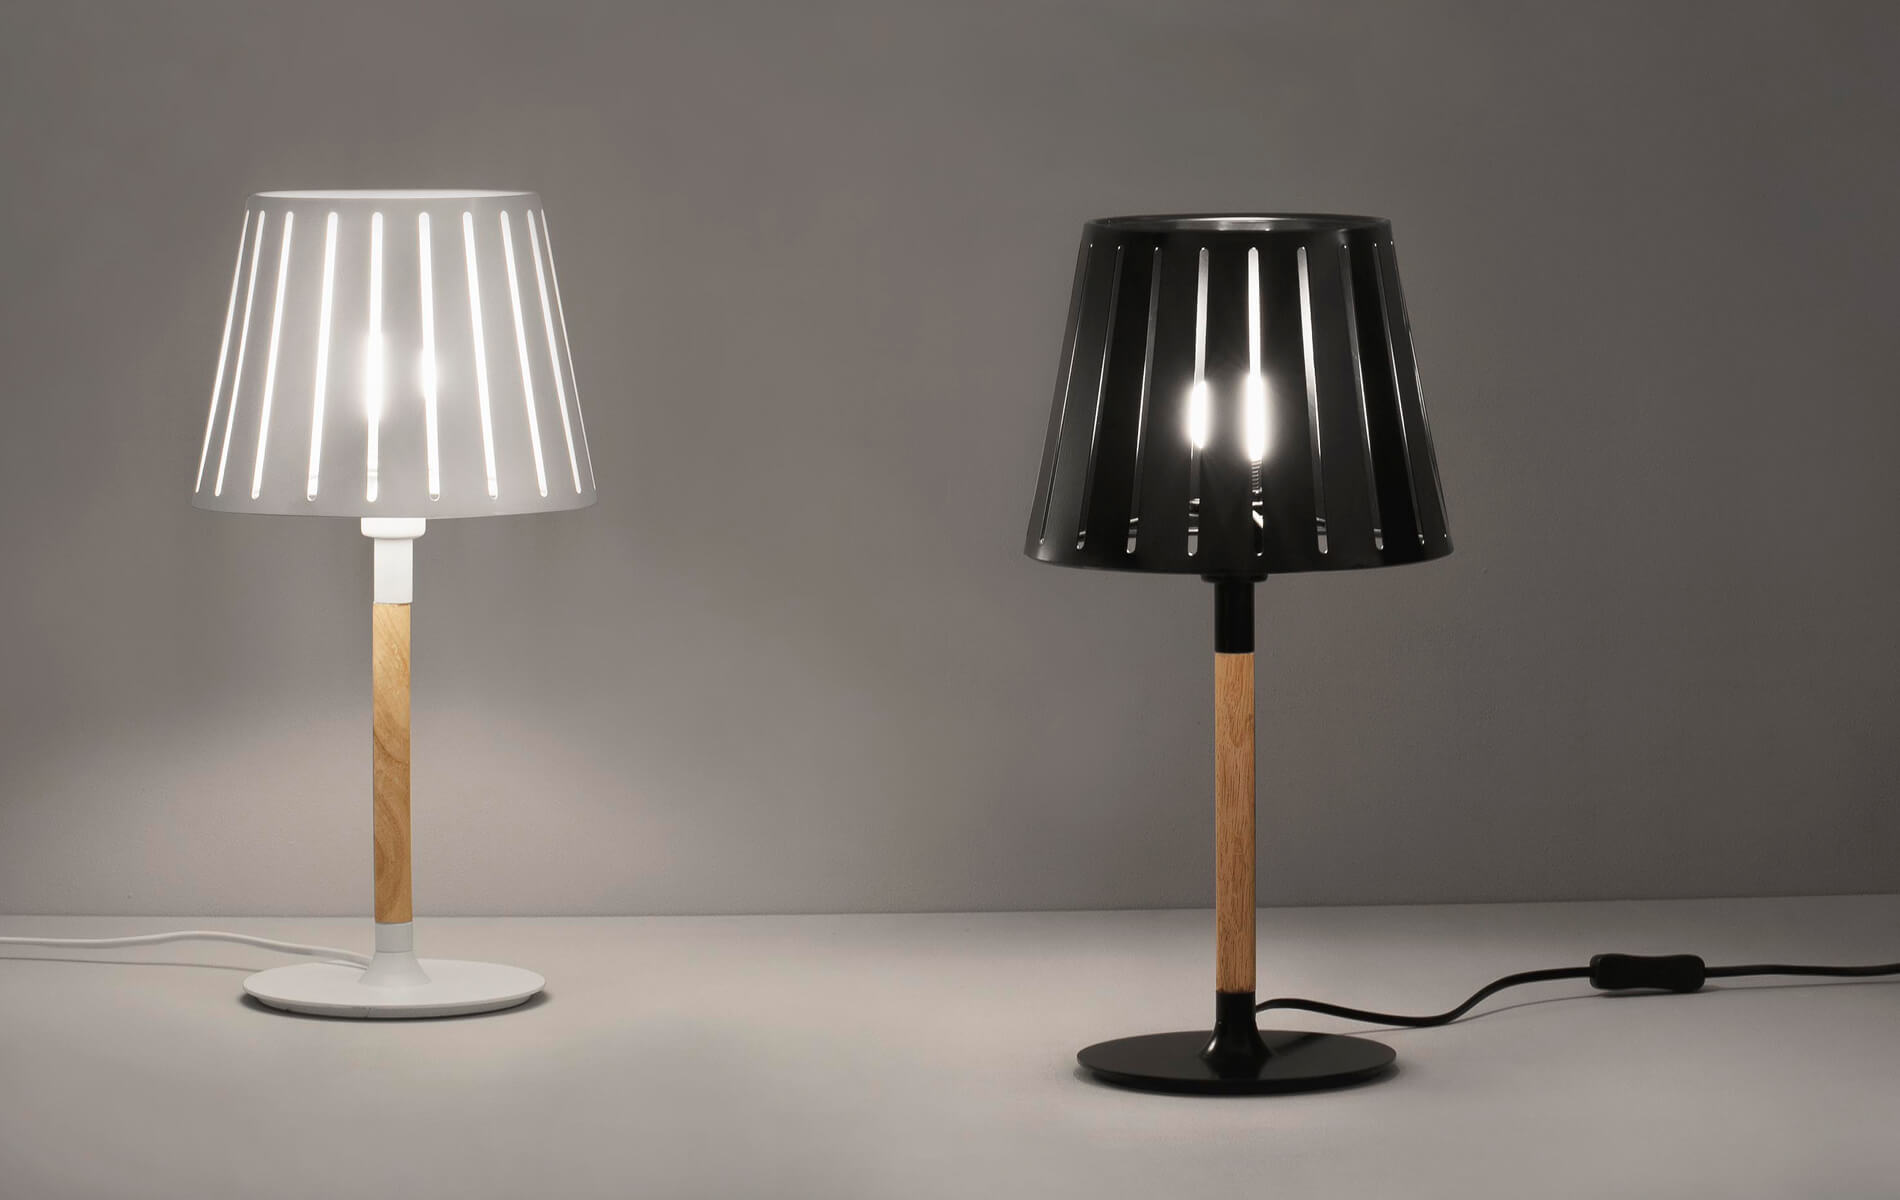 More information of Faro MIX table lamp